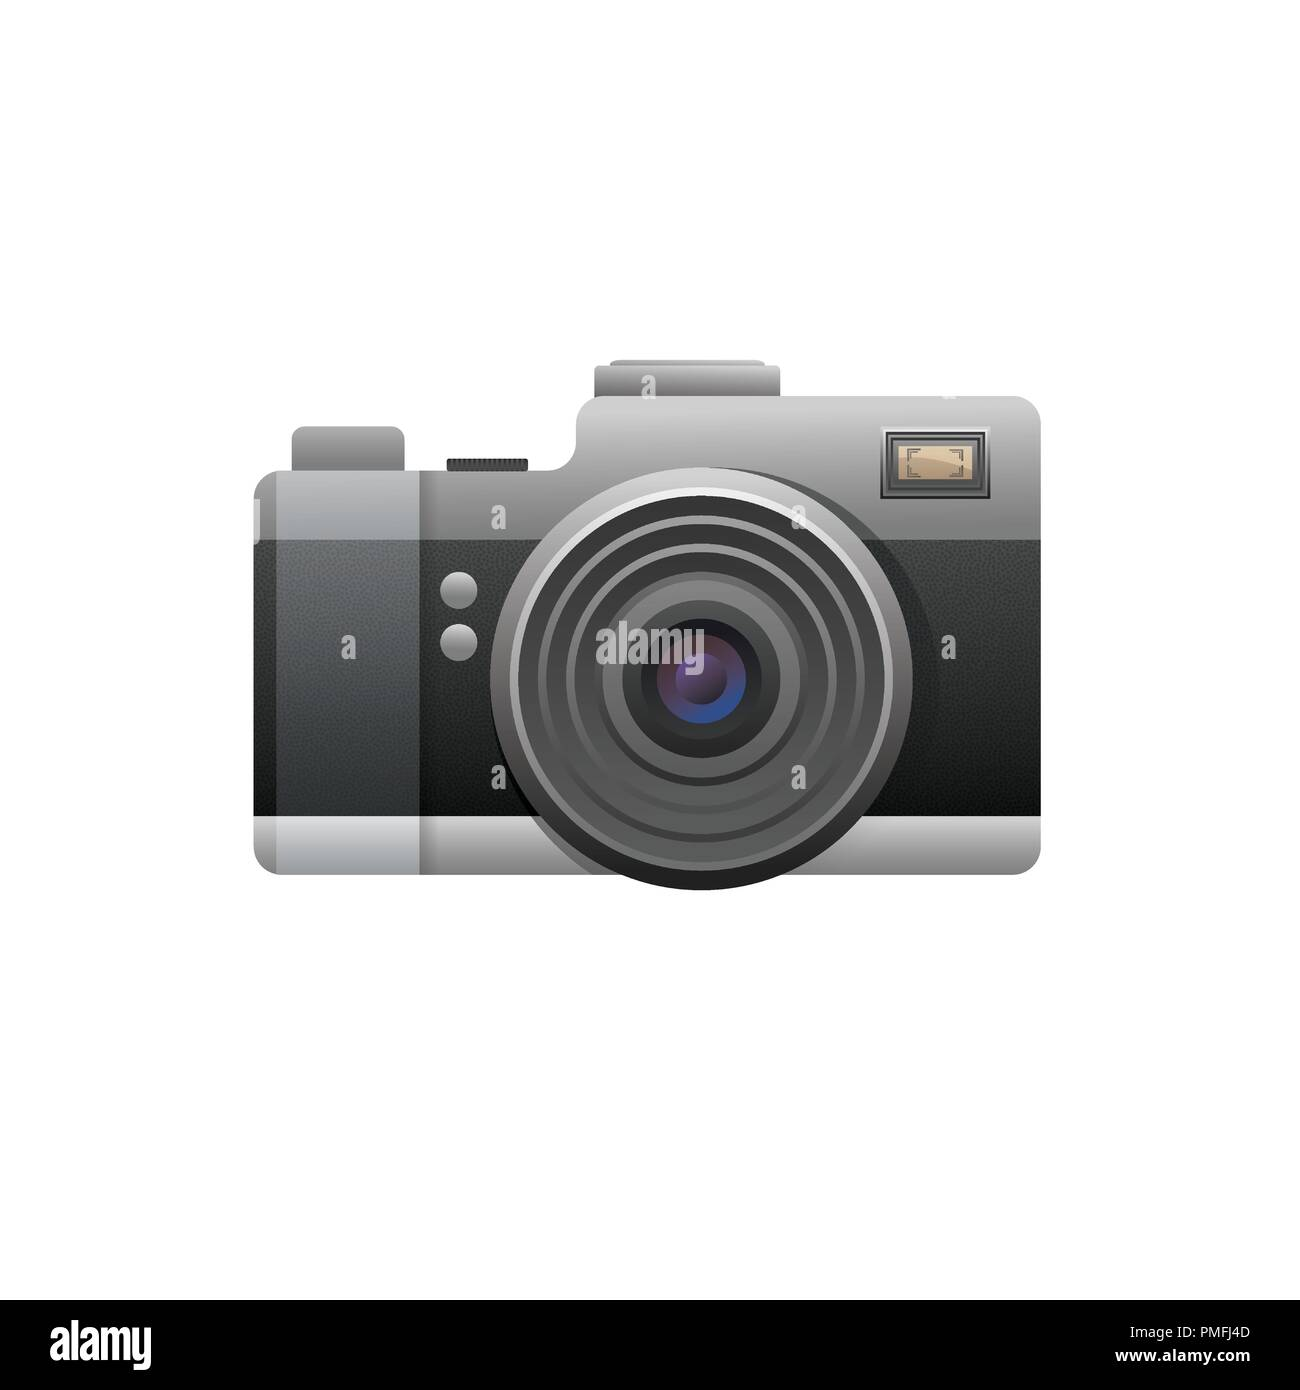 Web camera black on white background. Illustration - Stock Vector